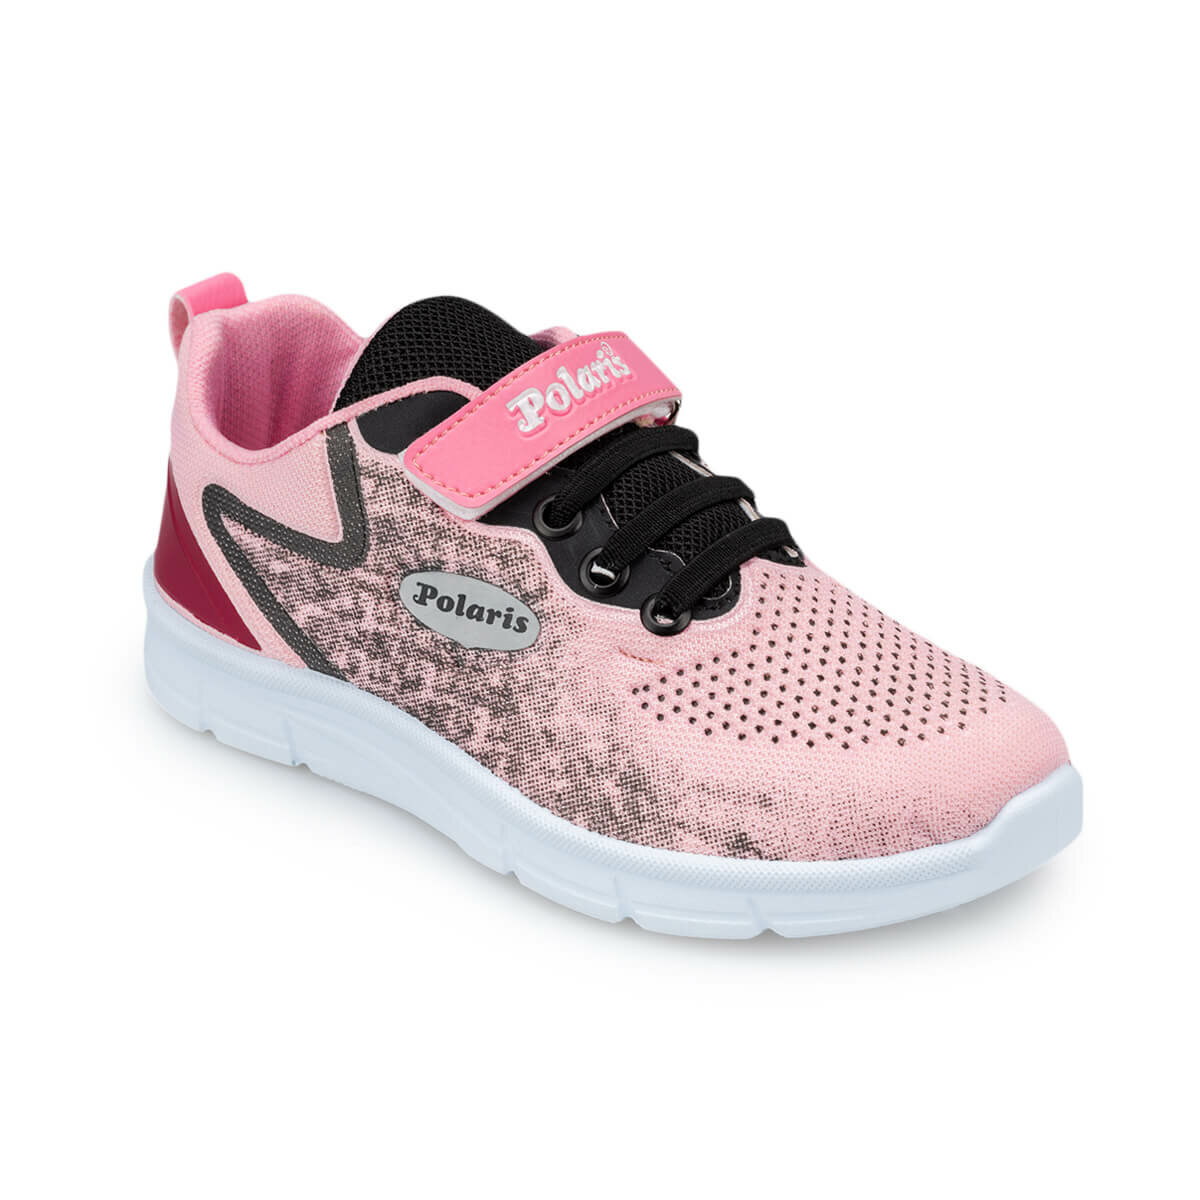 FLO 91. 511229.F Pink Female Child Shoes Polaris